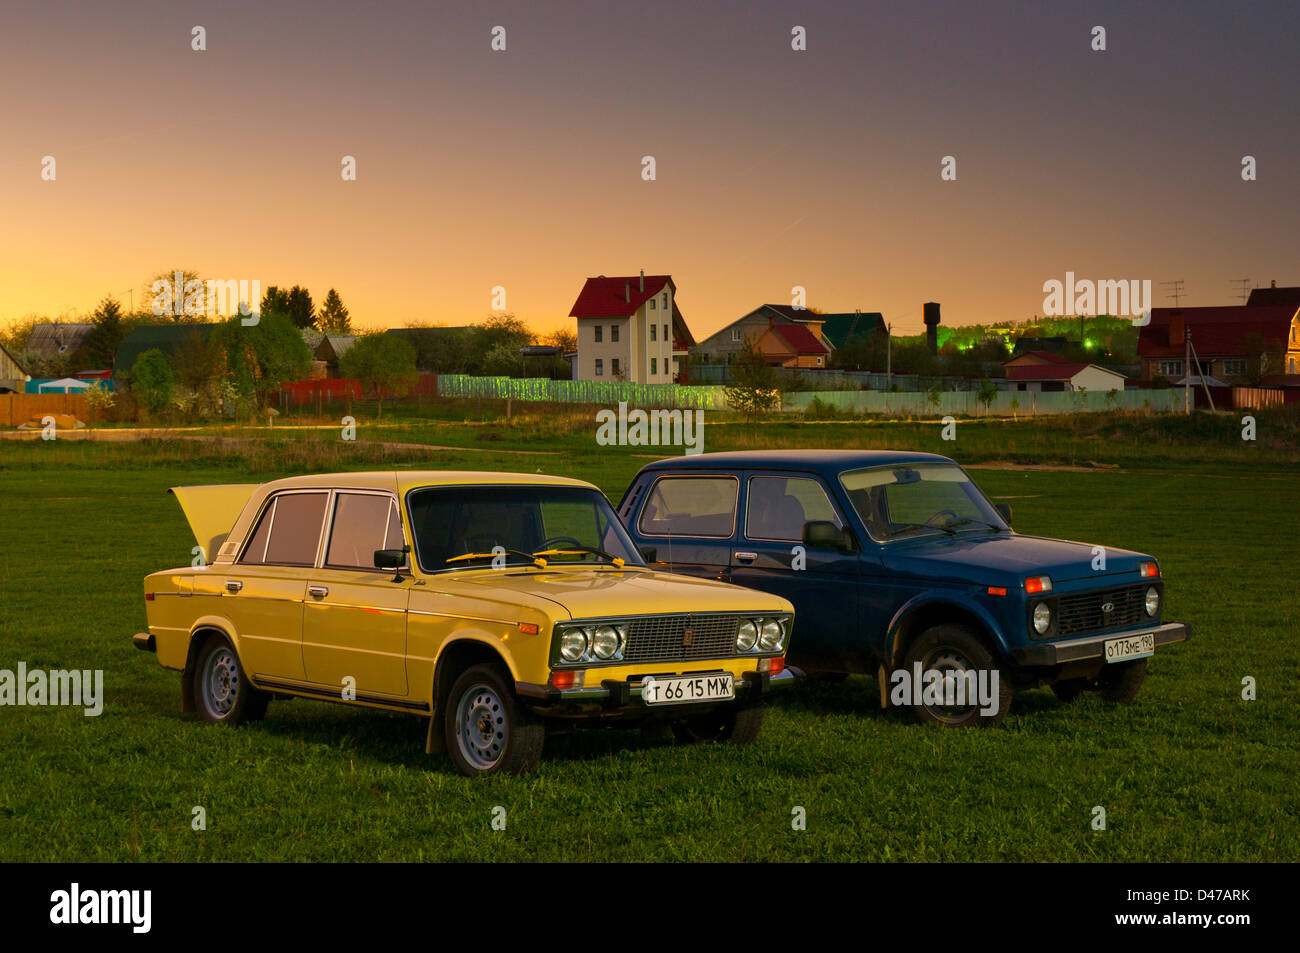 fiat 125 rally video html with Stock Photo Soviet And Russian Cars Lada Niva 4x4 Vaz 2121 And Lada 1600 Vaz 2106 54251895 on Fictitious Motorcycle further 19035 103989 likewise 25 Fiat Ritmo 125 Tc Abarth 1982 118 Lm089 3794386271303 furthermore Harley Davidson Sportster Iron 883 Noir Desir Essai Video 49334 further Mercedes Benz Lautomobile  pie 125 Anni.